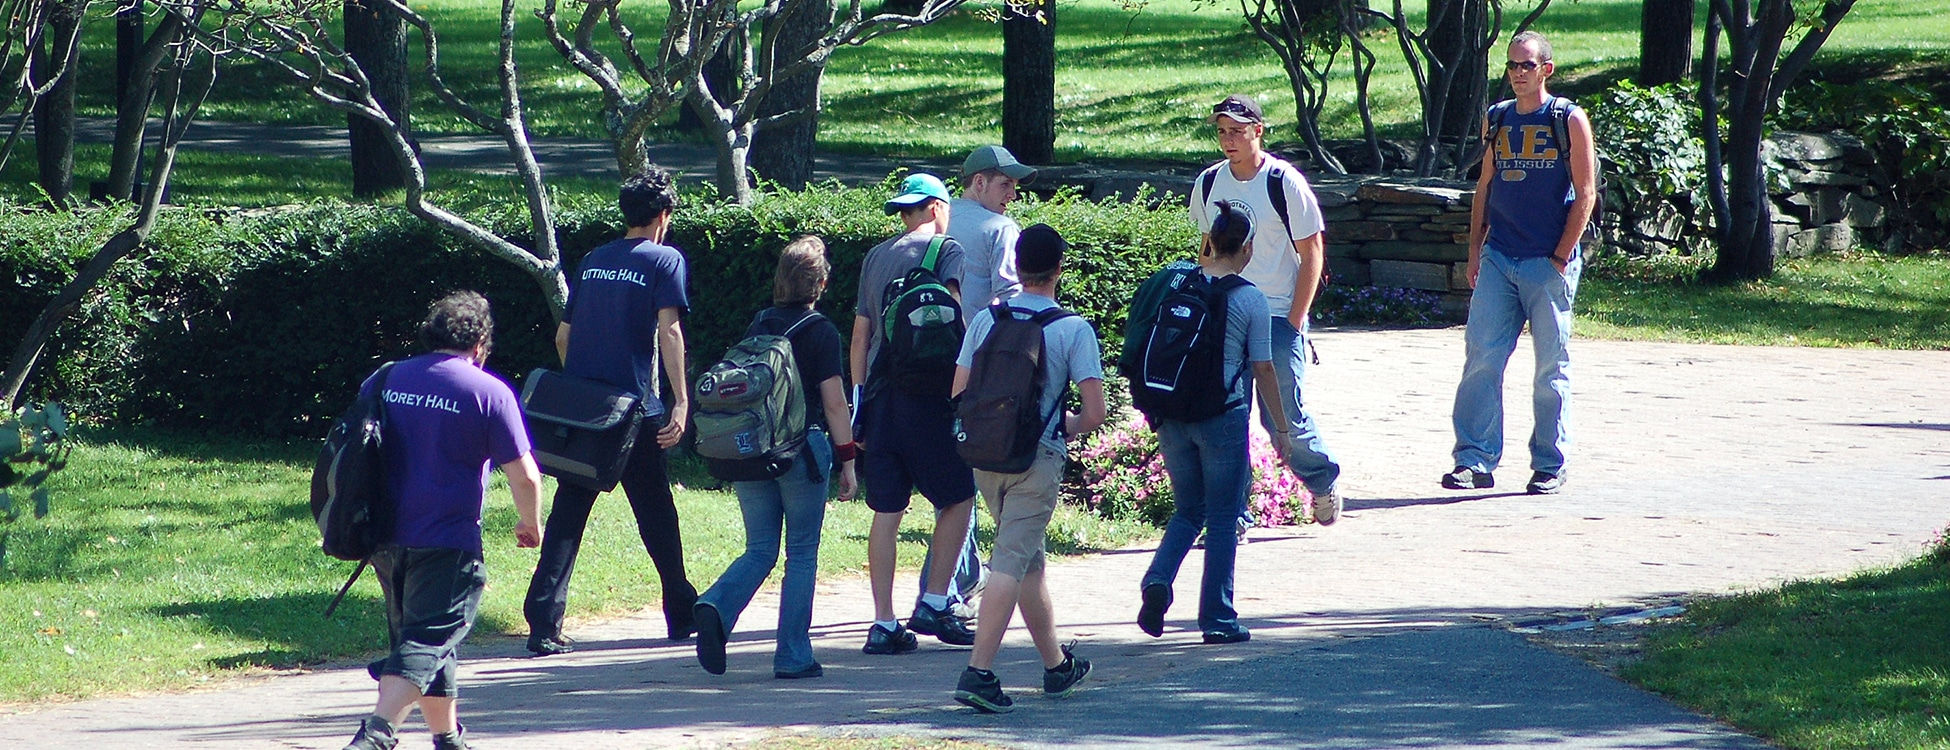 Students walk up the walkway in the early fall on the Randolph Center campus